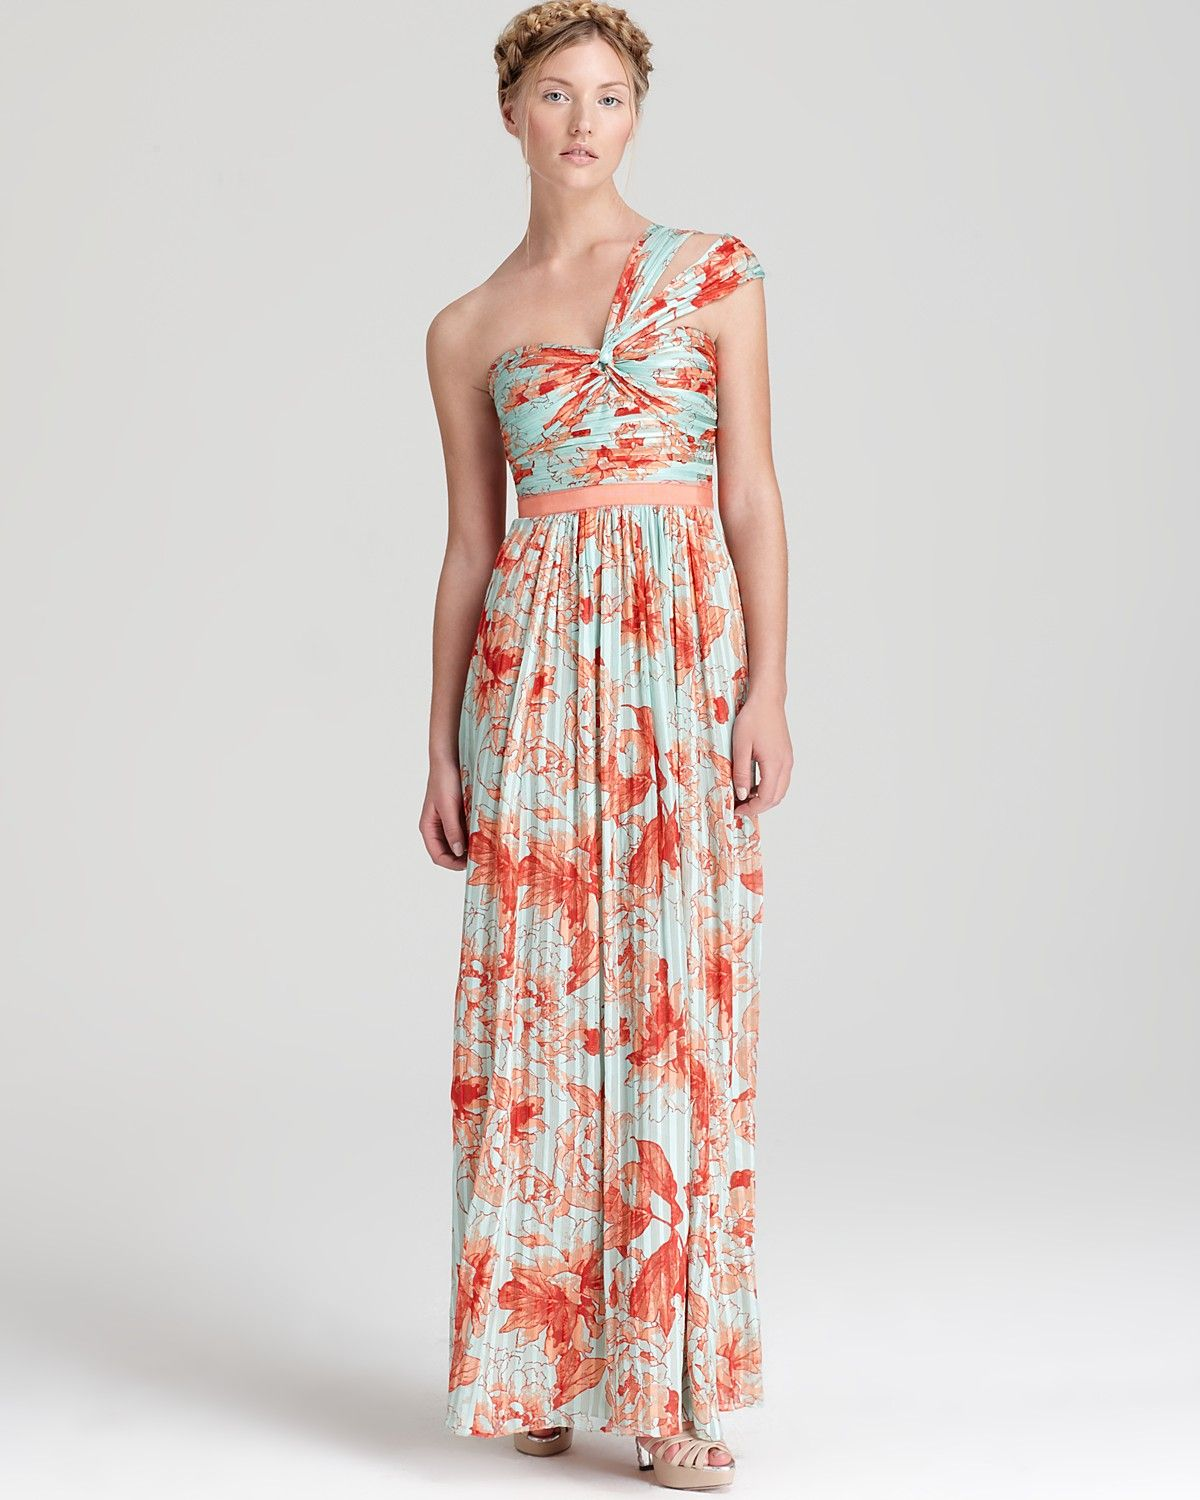 Bcbgmaxazria One Shoulder Gown Sweetheart Printed Women Dresses Bloomingdale S Gowns One Shoulder Gown Dresses [ 1500 x 1200 Pixel ]